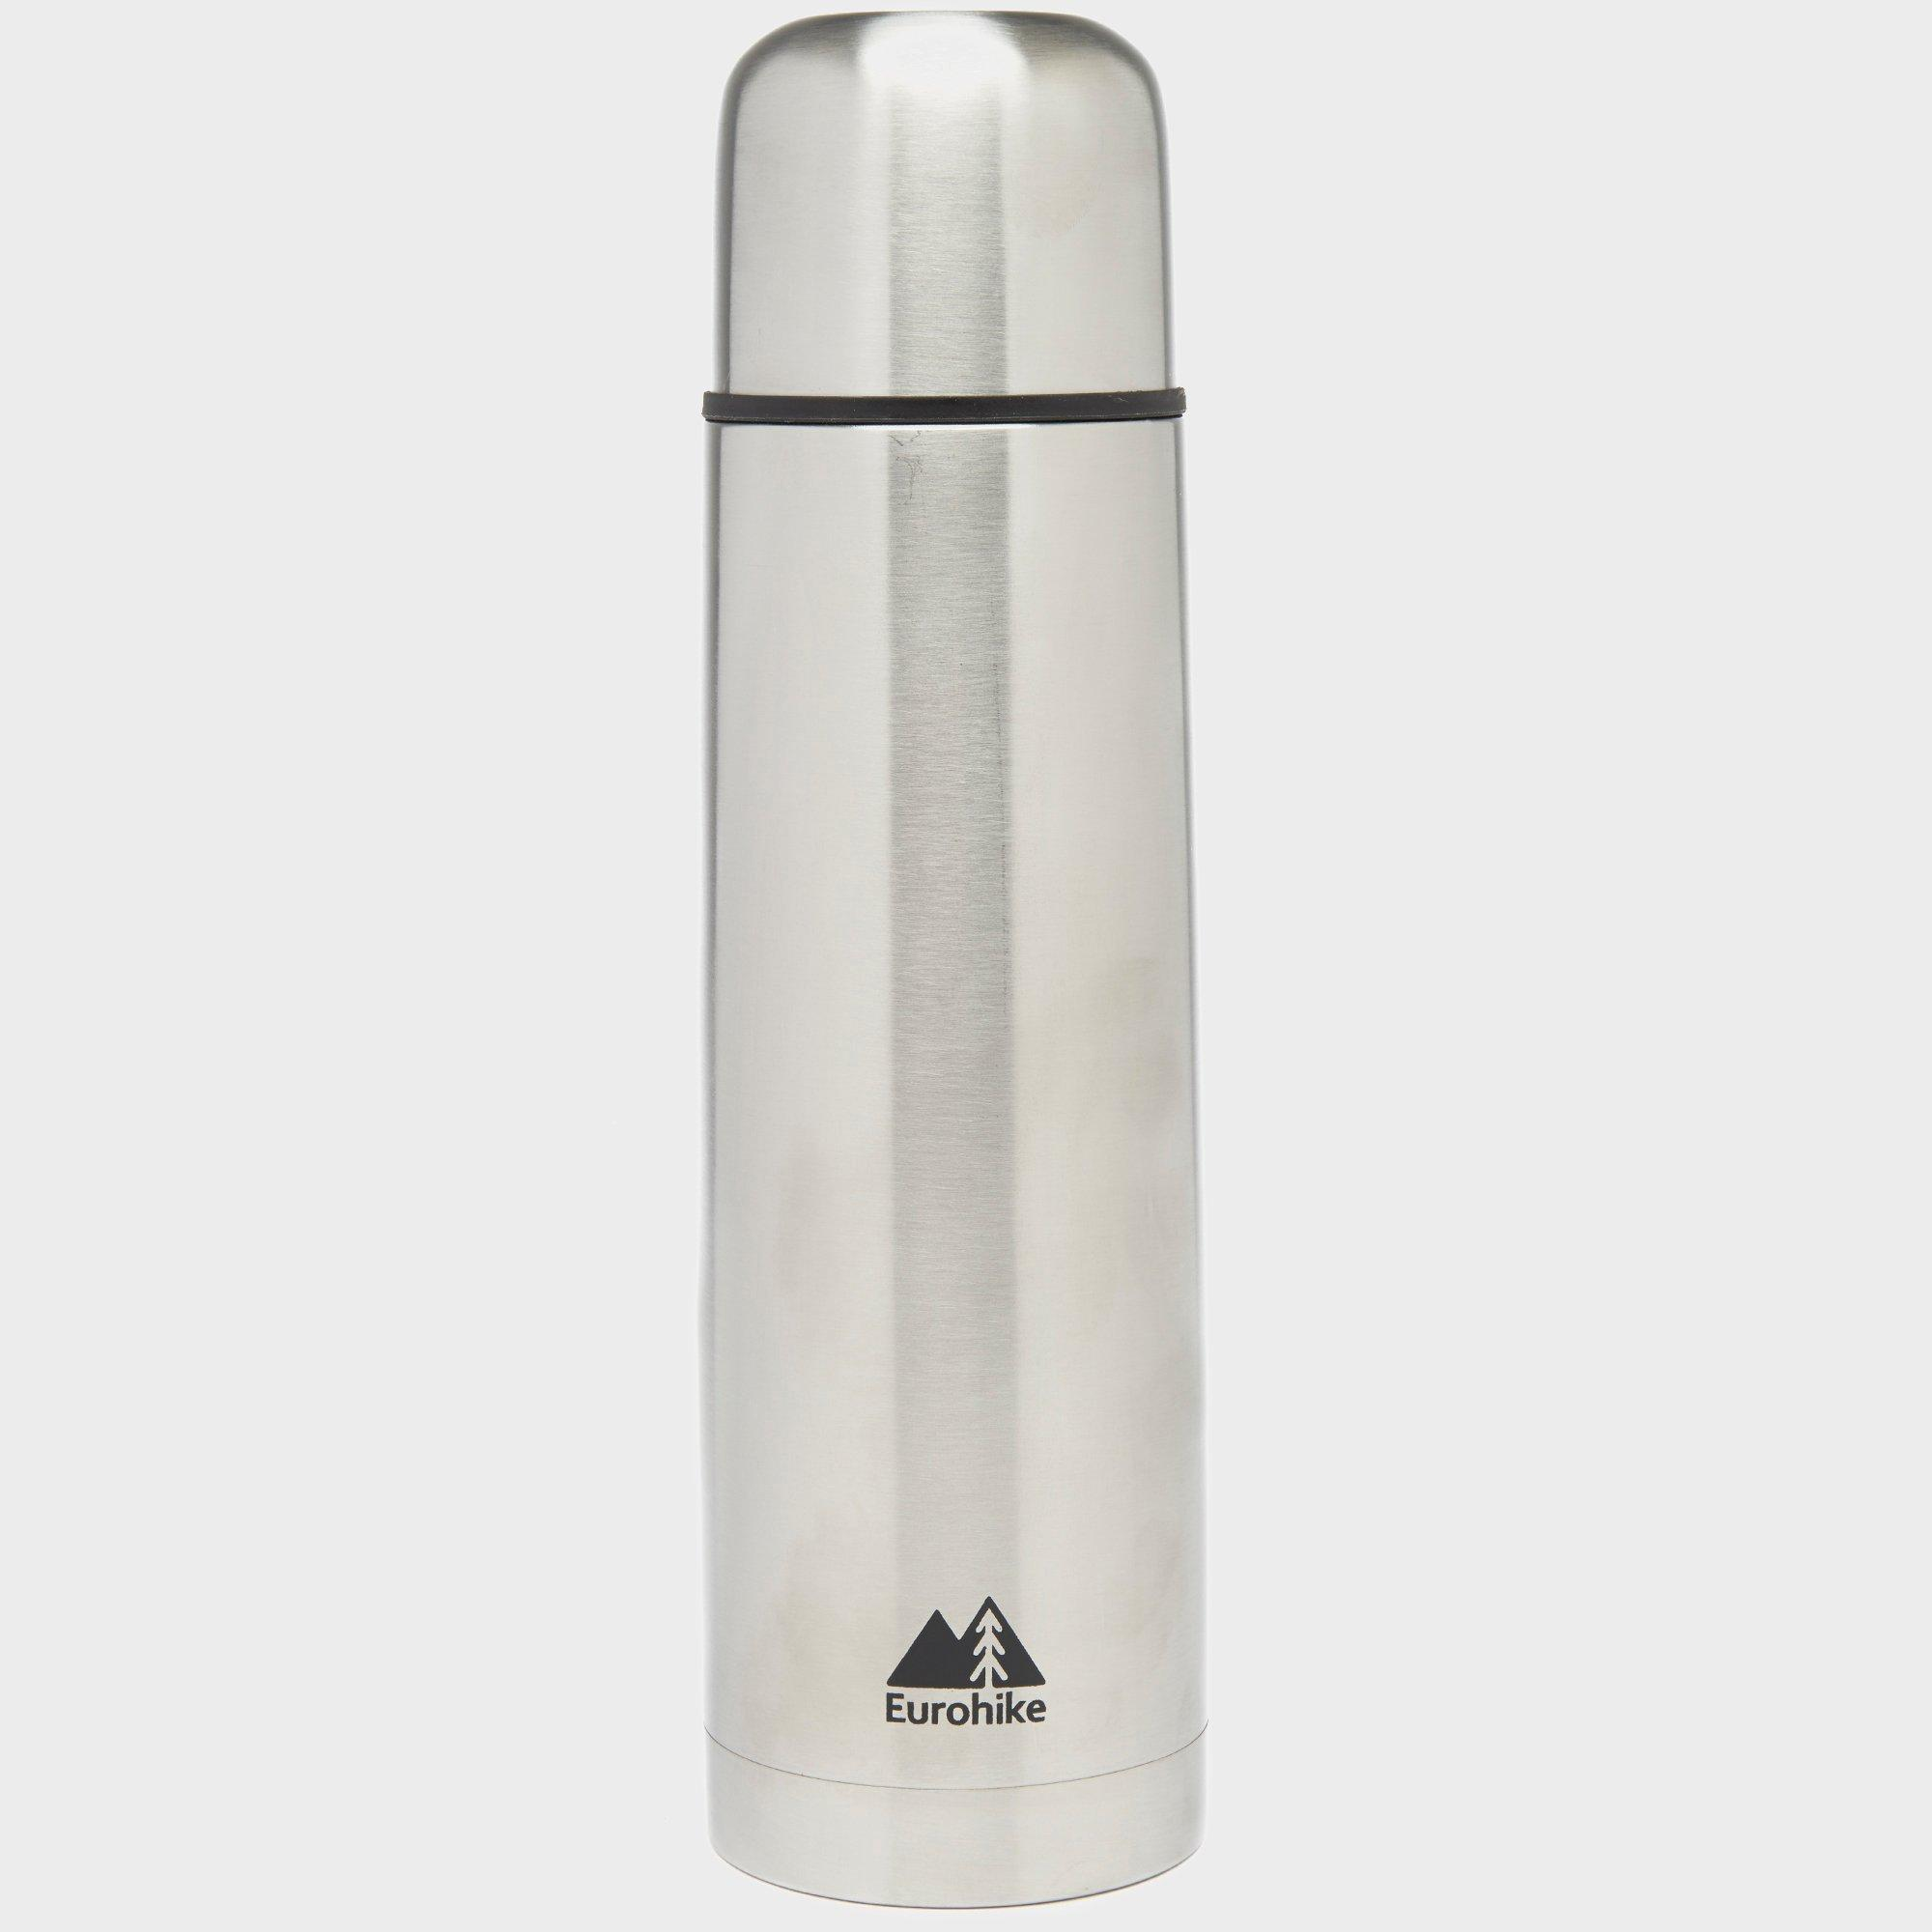 Eurohike Stainless Steel Flask 750ml - Sil  Sil